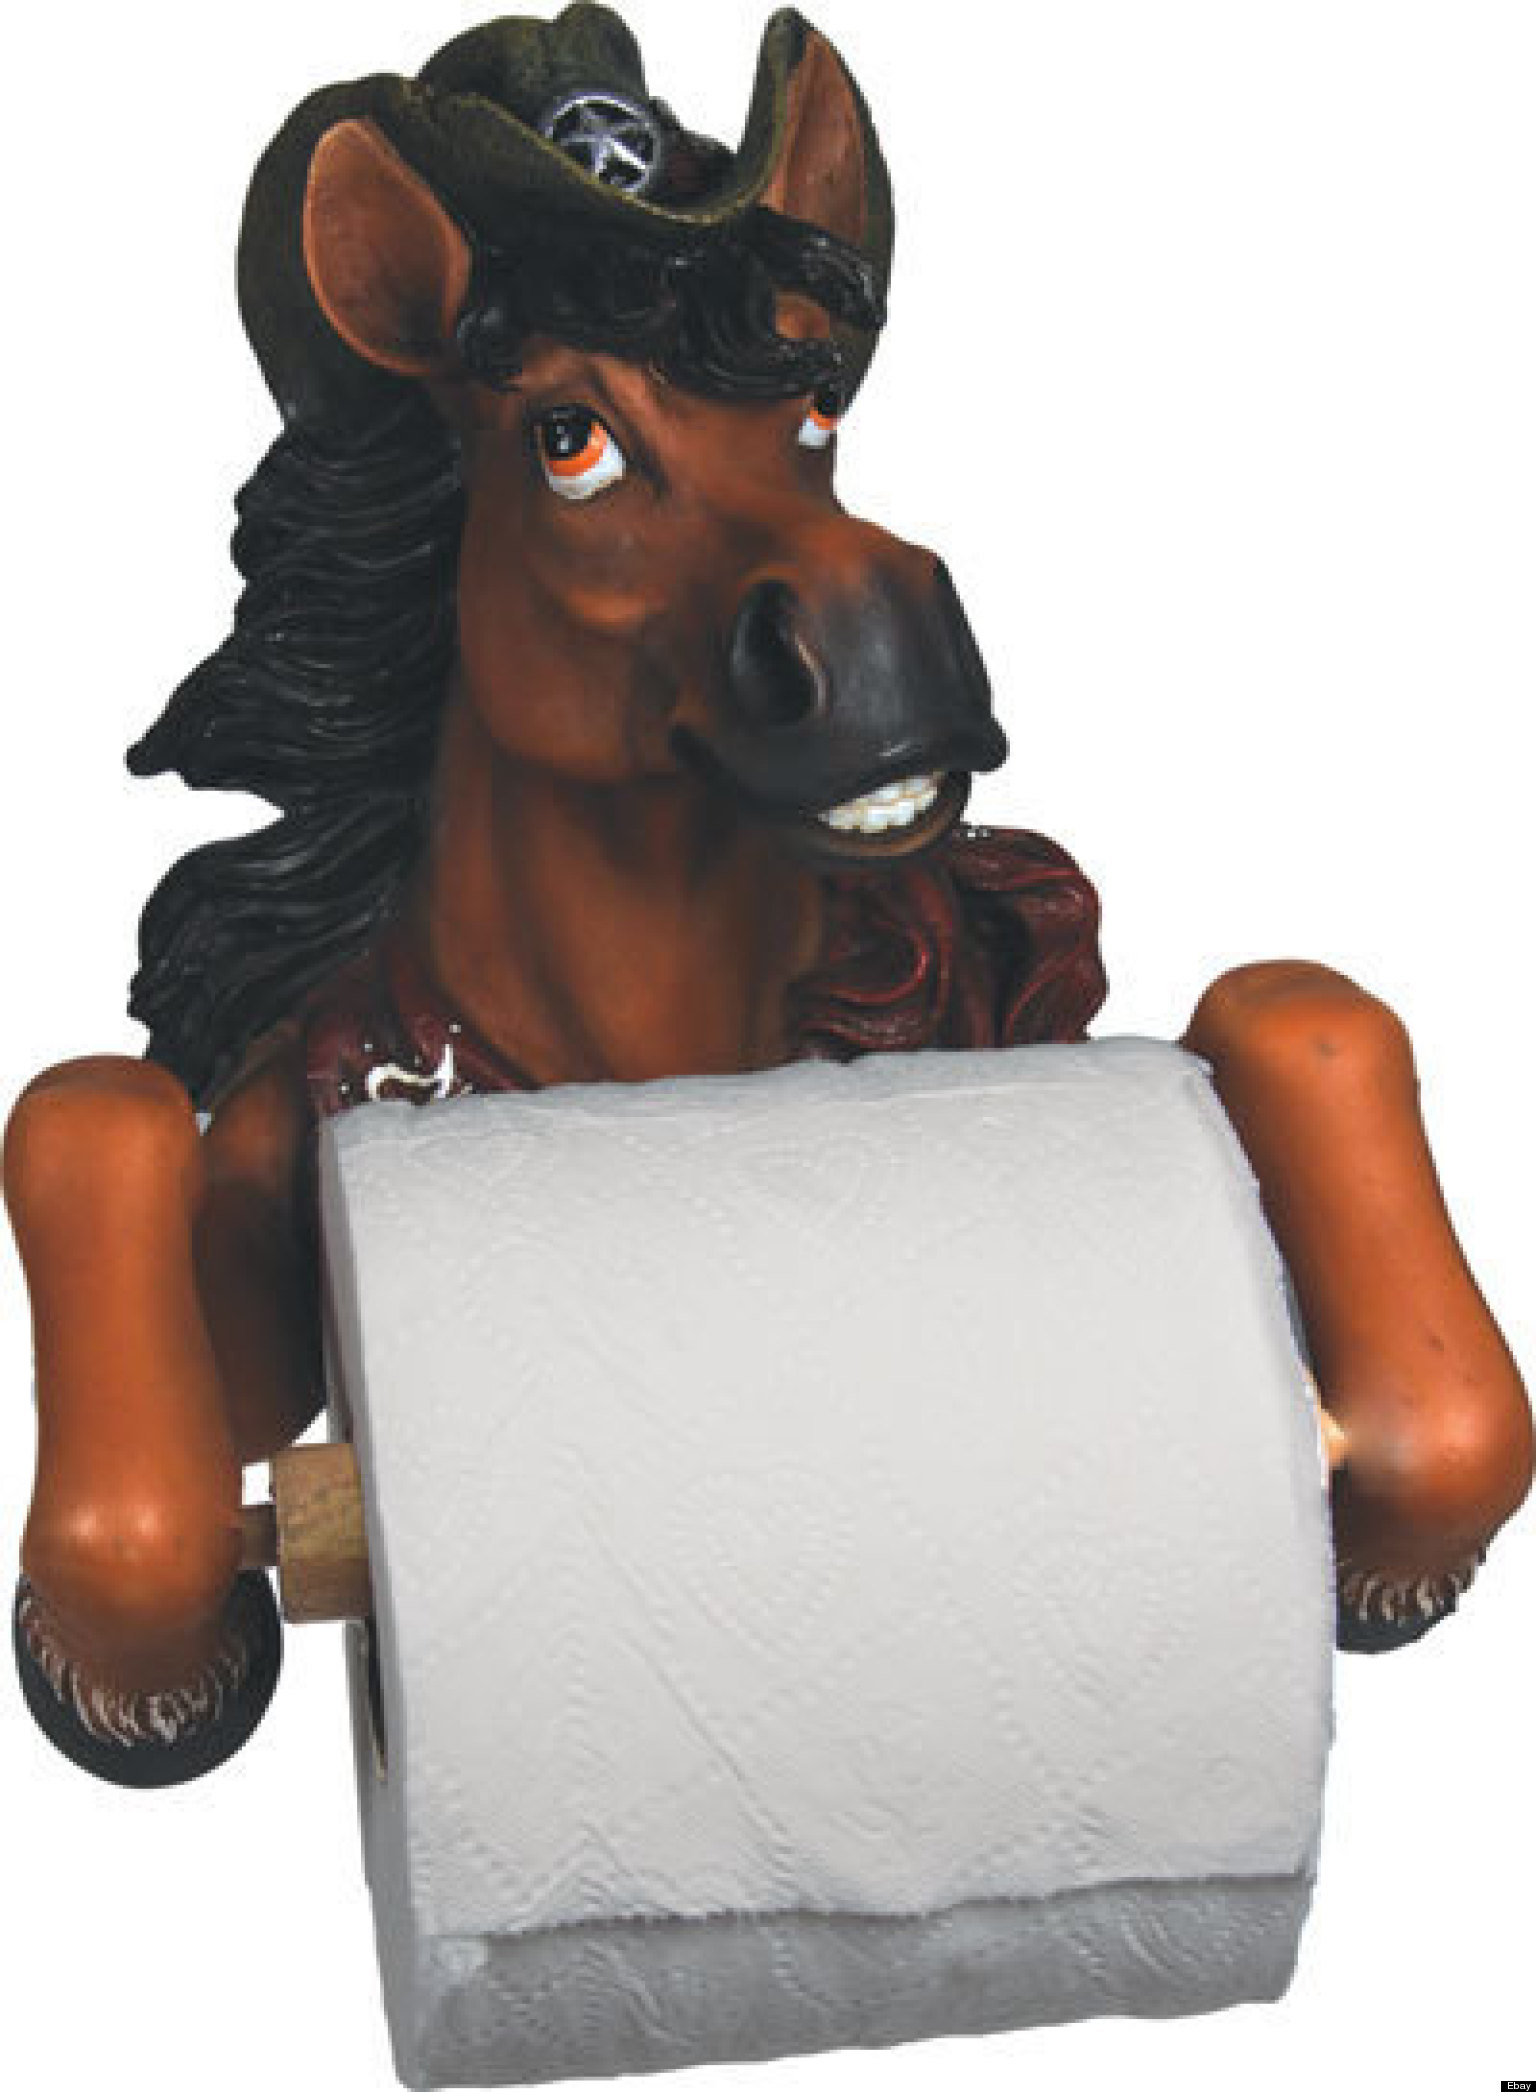 19 Ridiculous Toilet Paper Holders Photos Huffpost